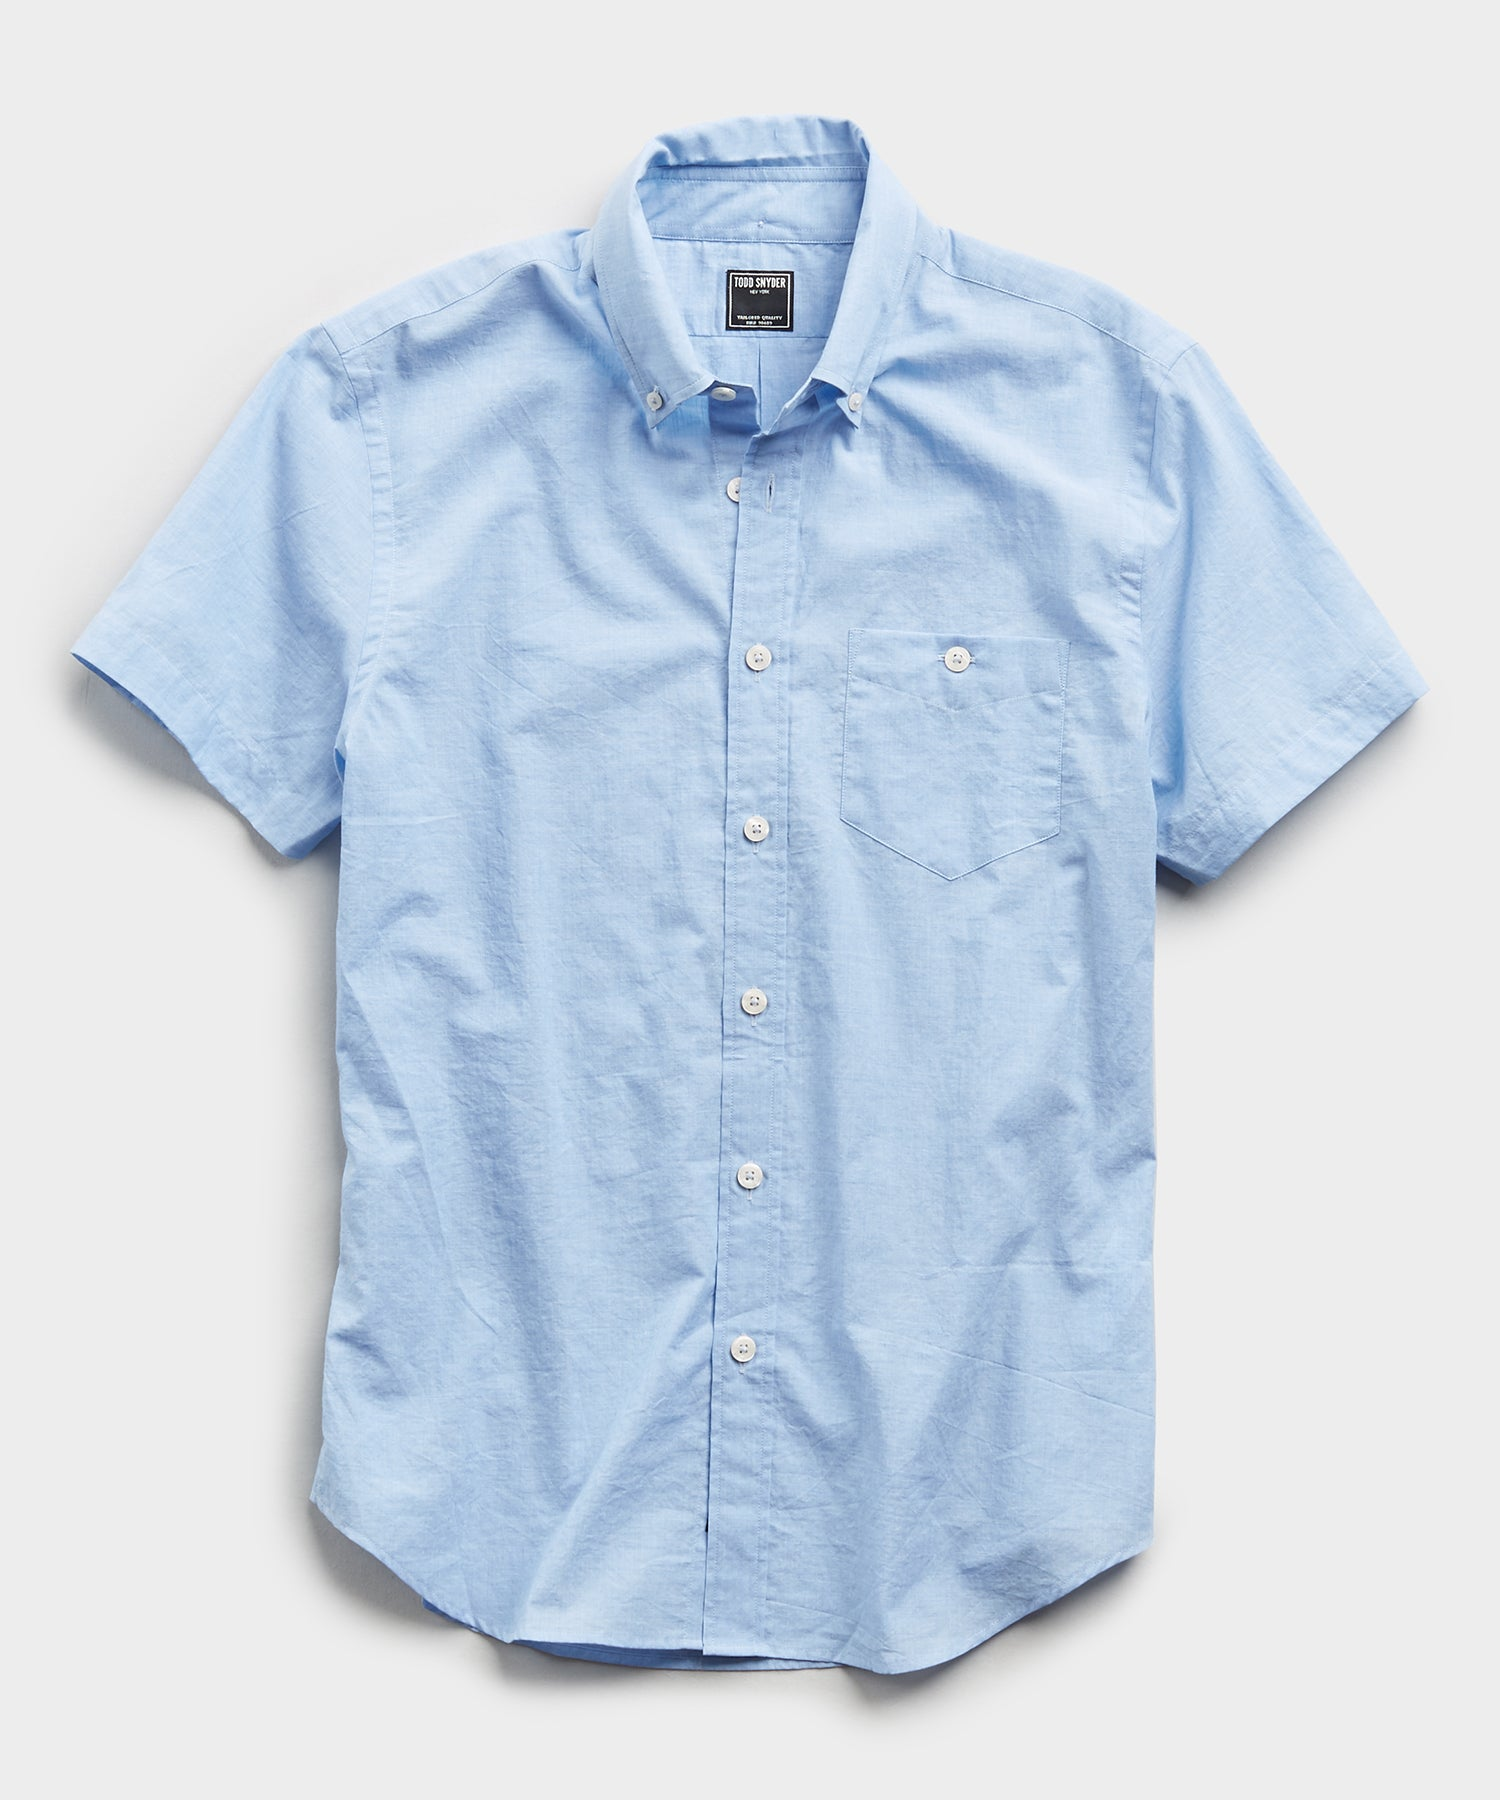 Saint Tropez Button Collar Short Sleeve Shirt in Light Blue